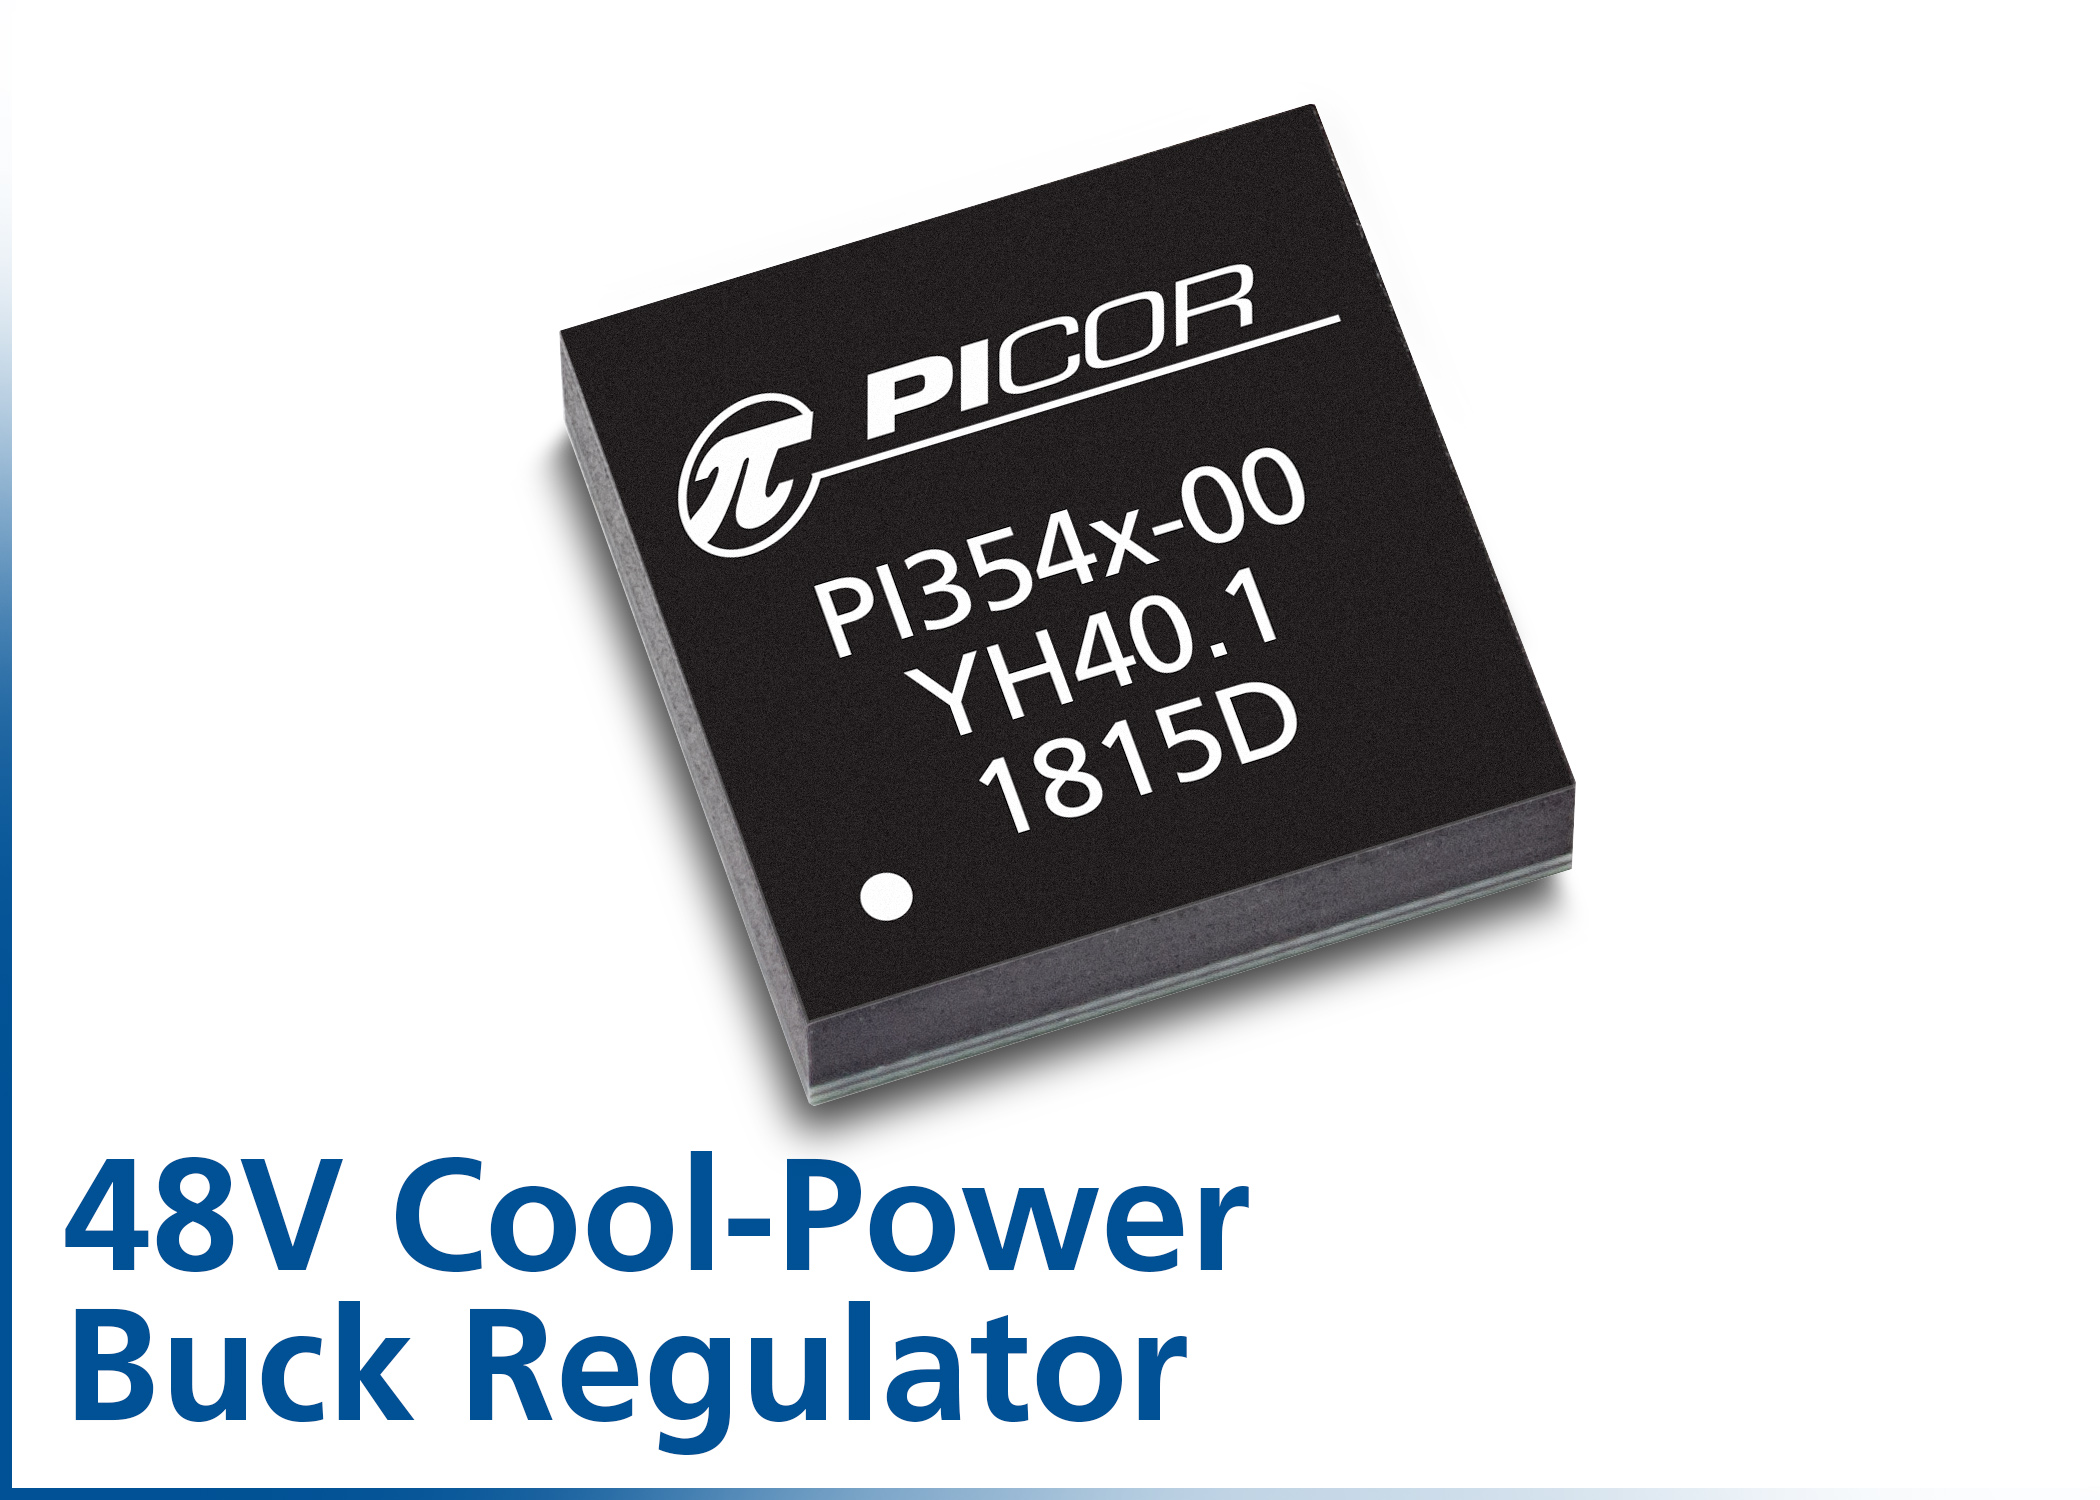 BGA Package for 48V Cool-Power ZVS Buck Regulator Portfolio